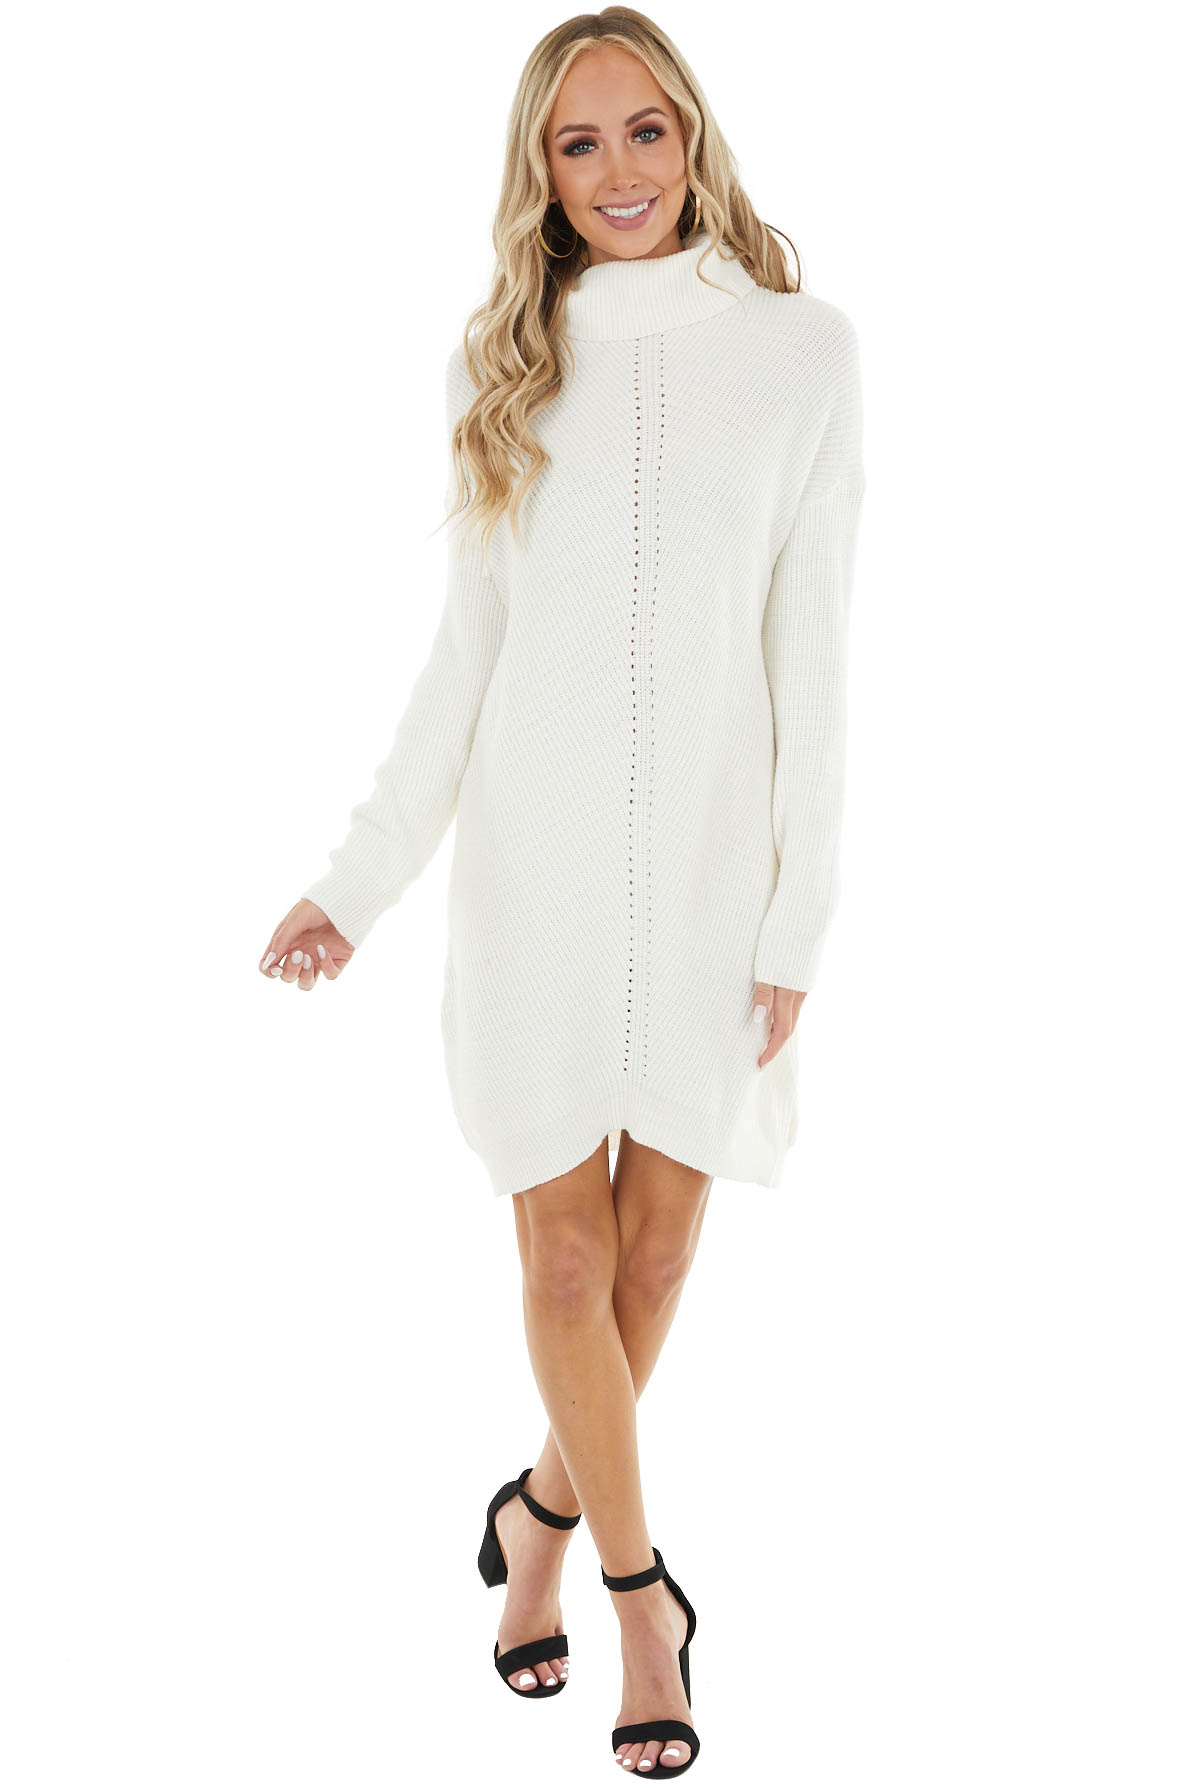 Ivory Cowl Neck Sweater Dress with Small Cutout Details